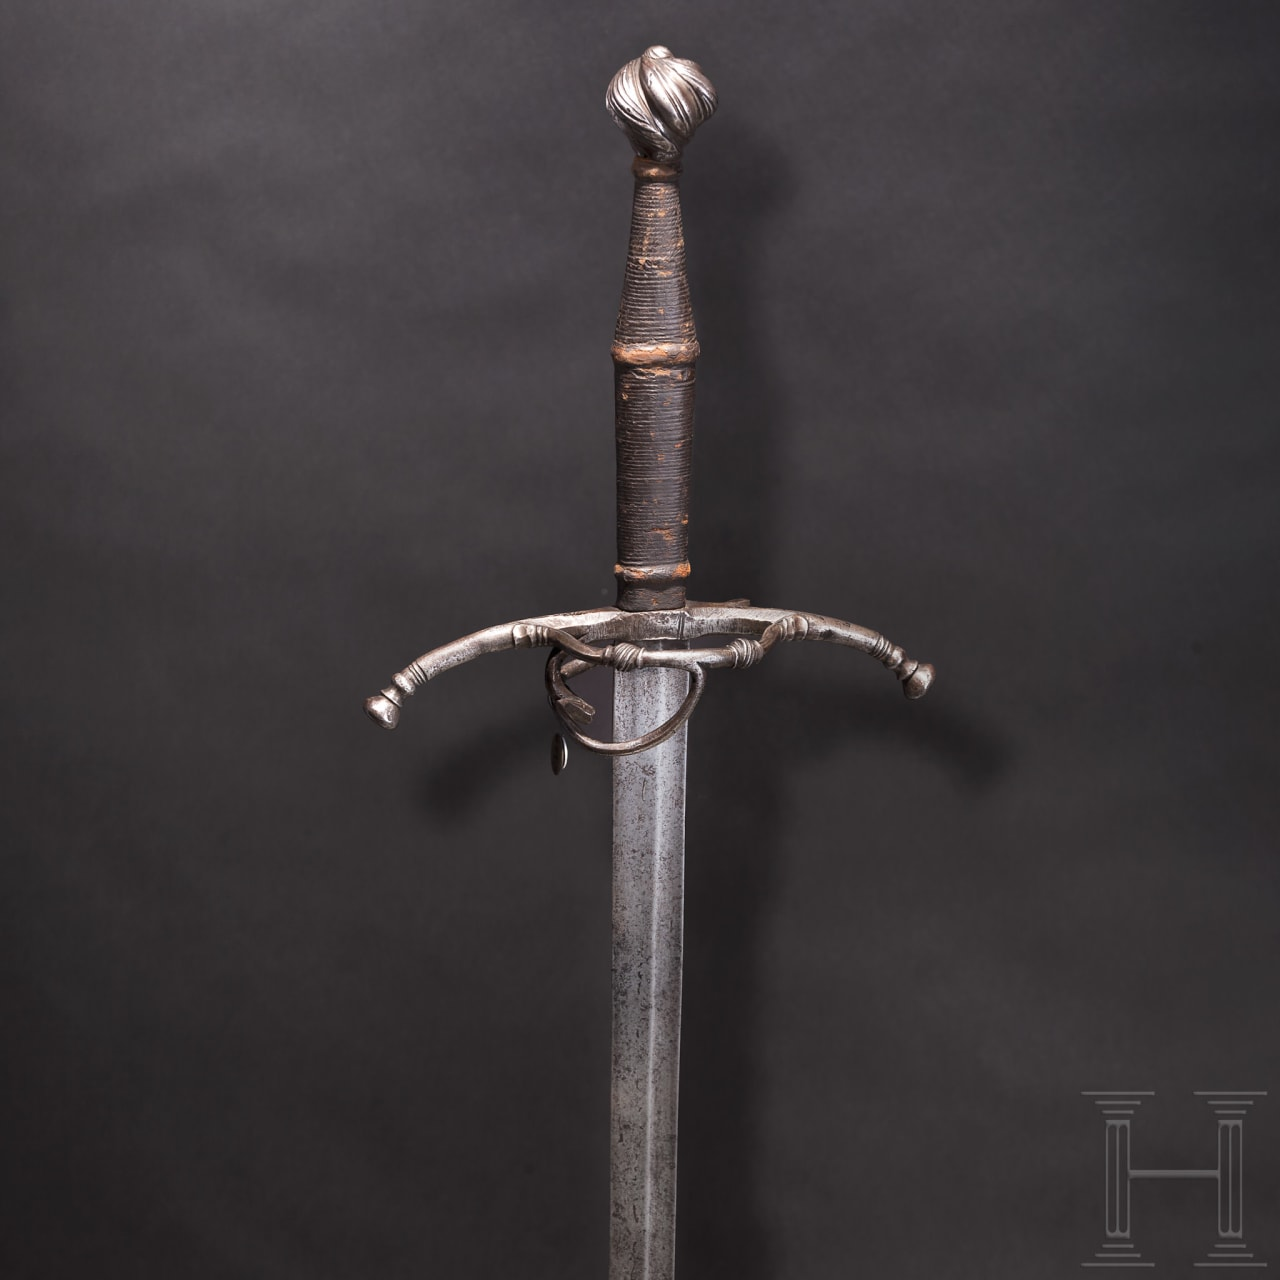 A South German Maximilian hand-and-a-half sword, circa 1520